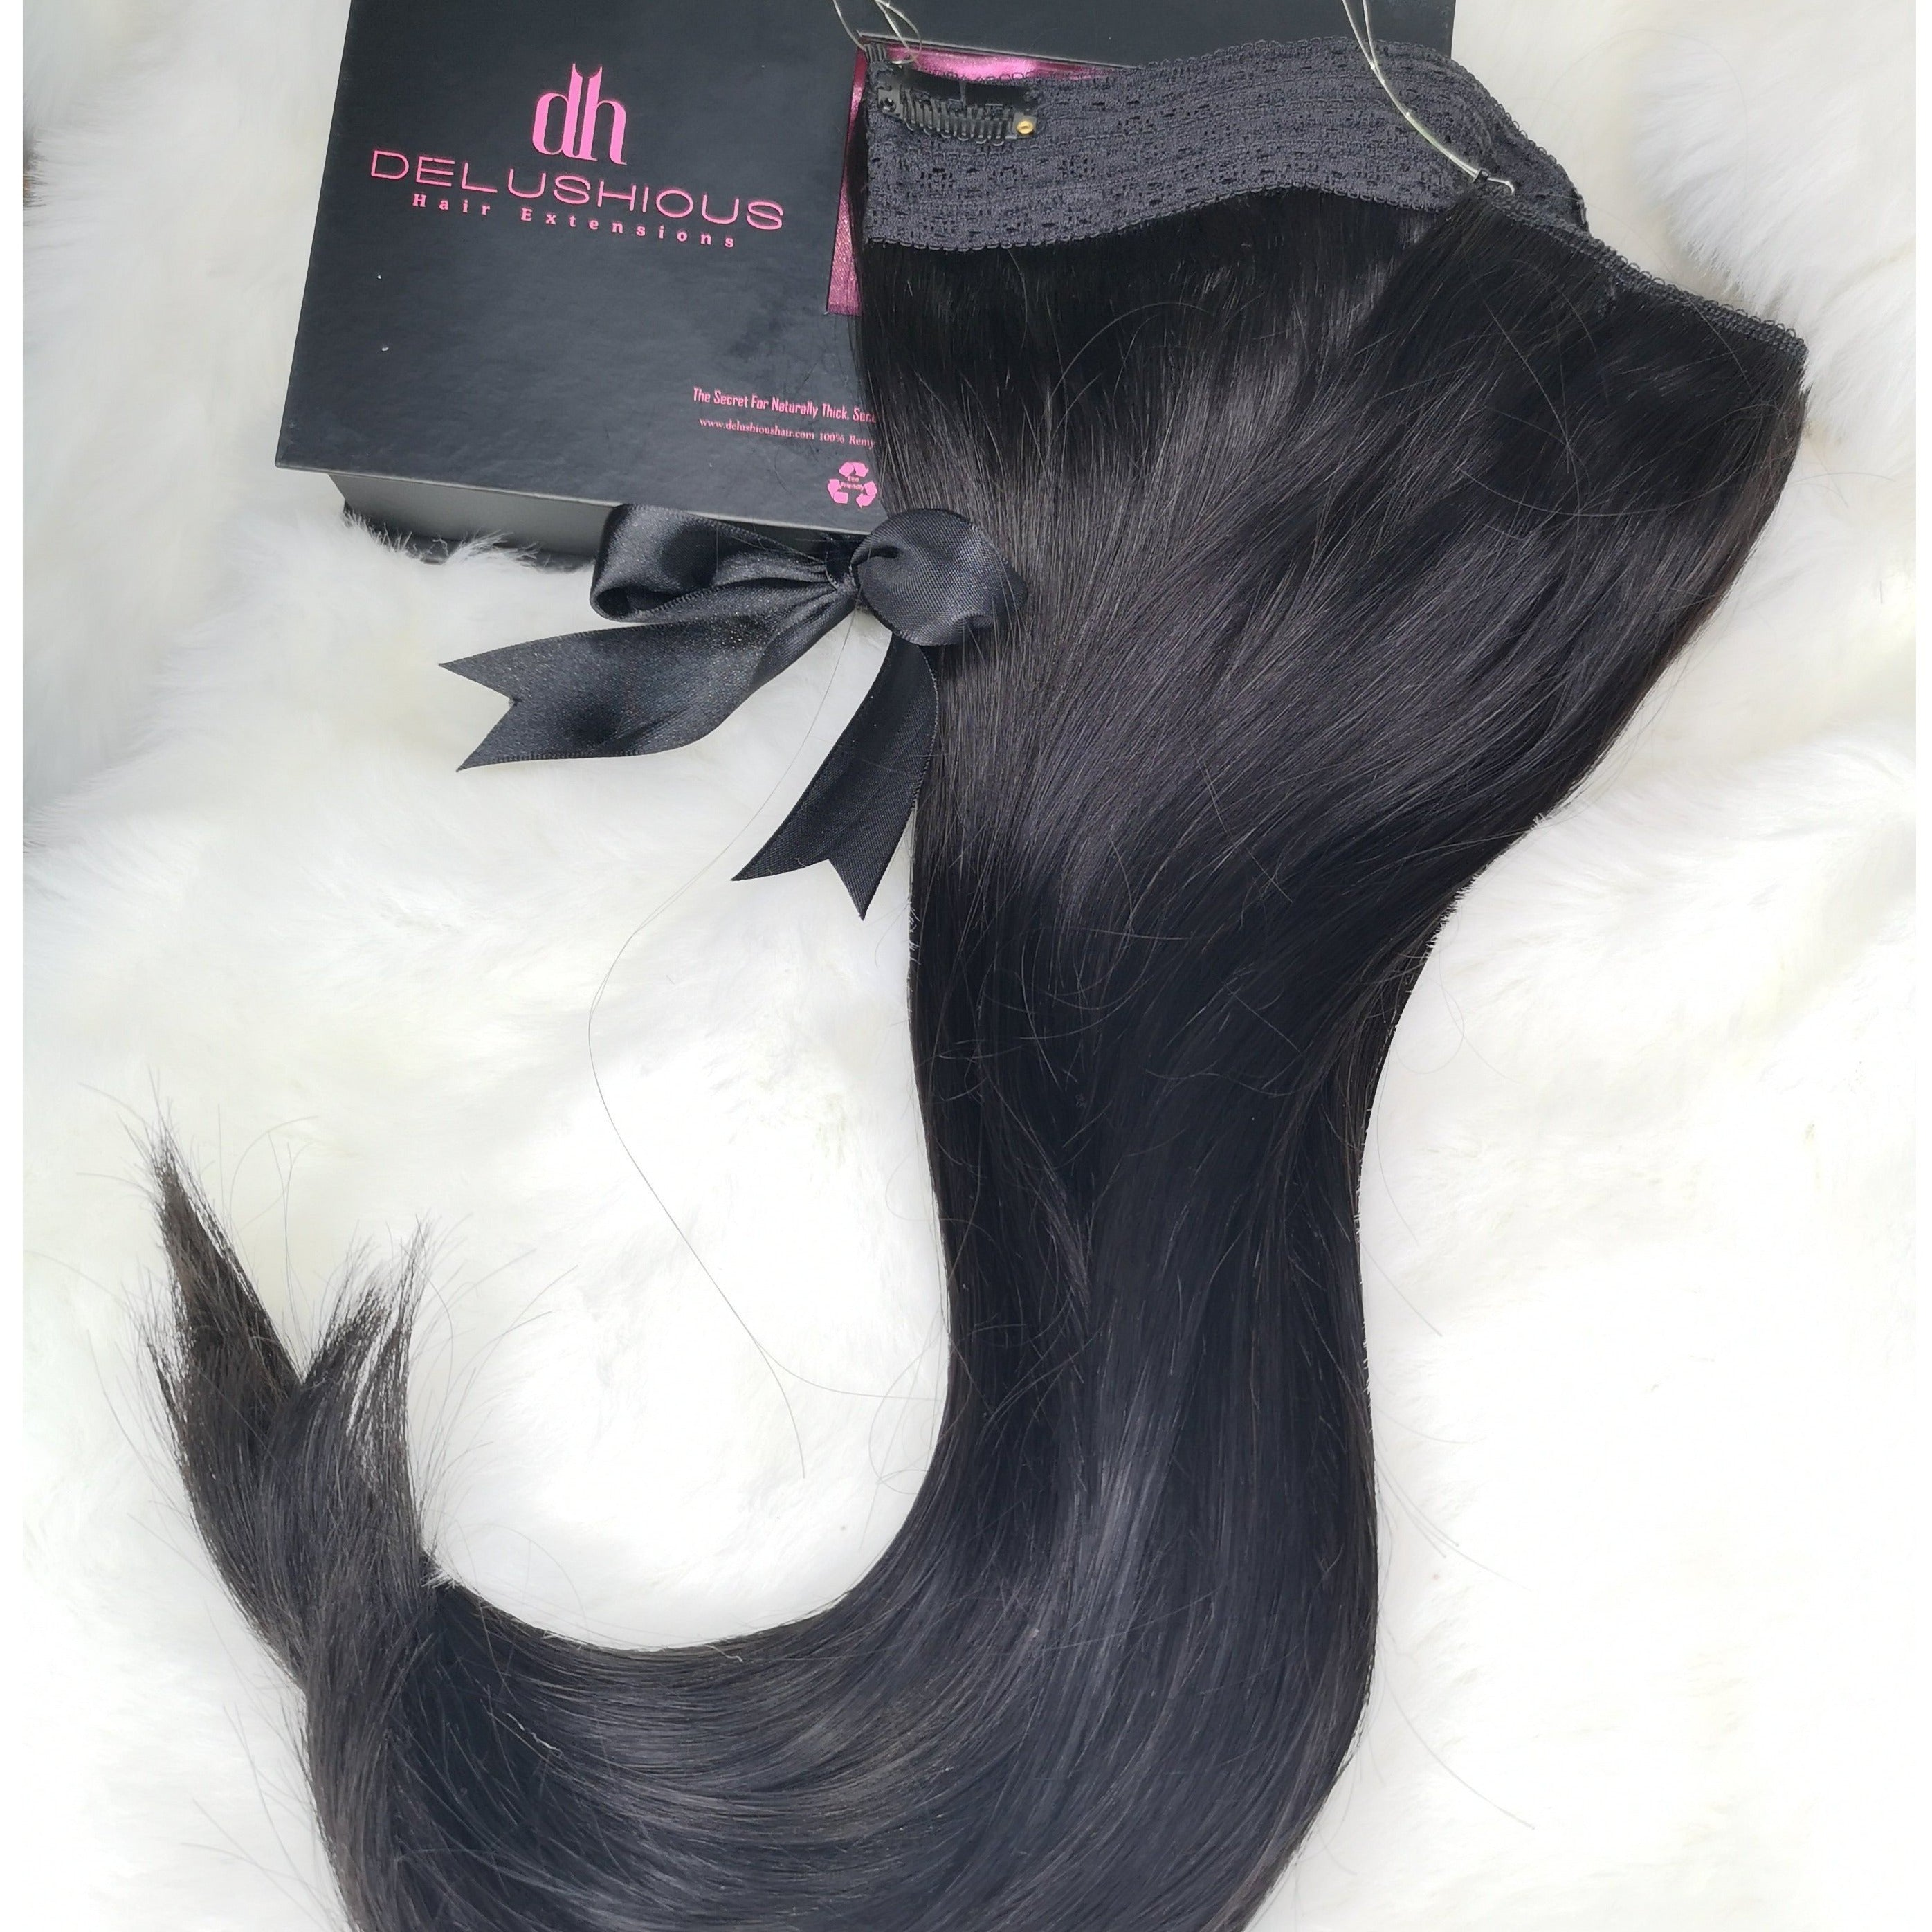 beautiful hair made easy with www.delushioushair.com clip-in extensions